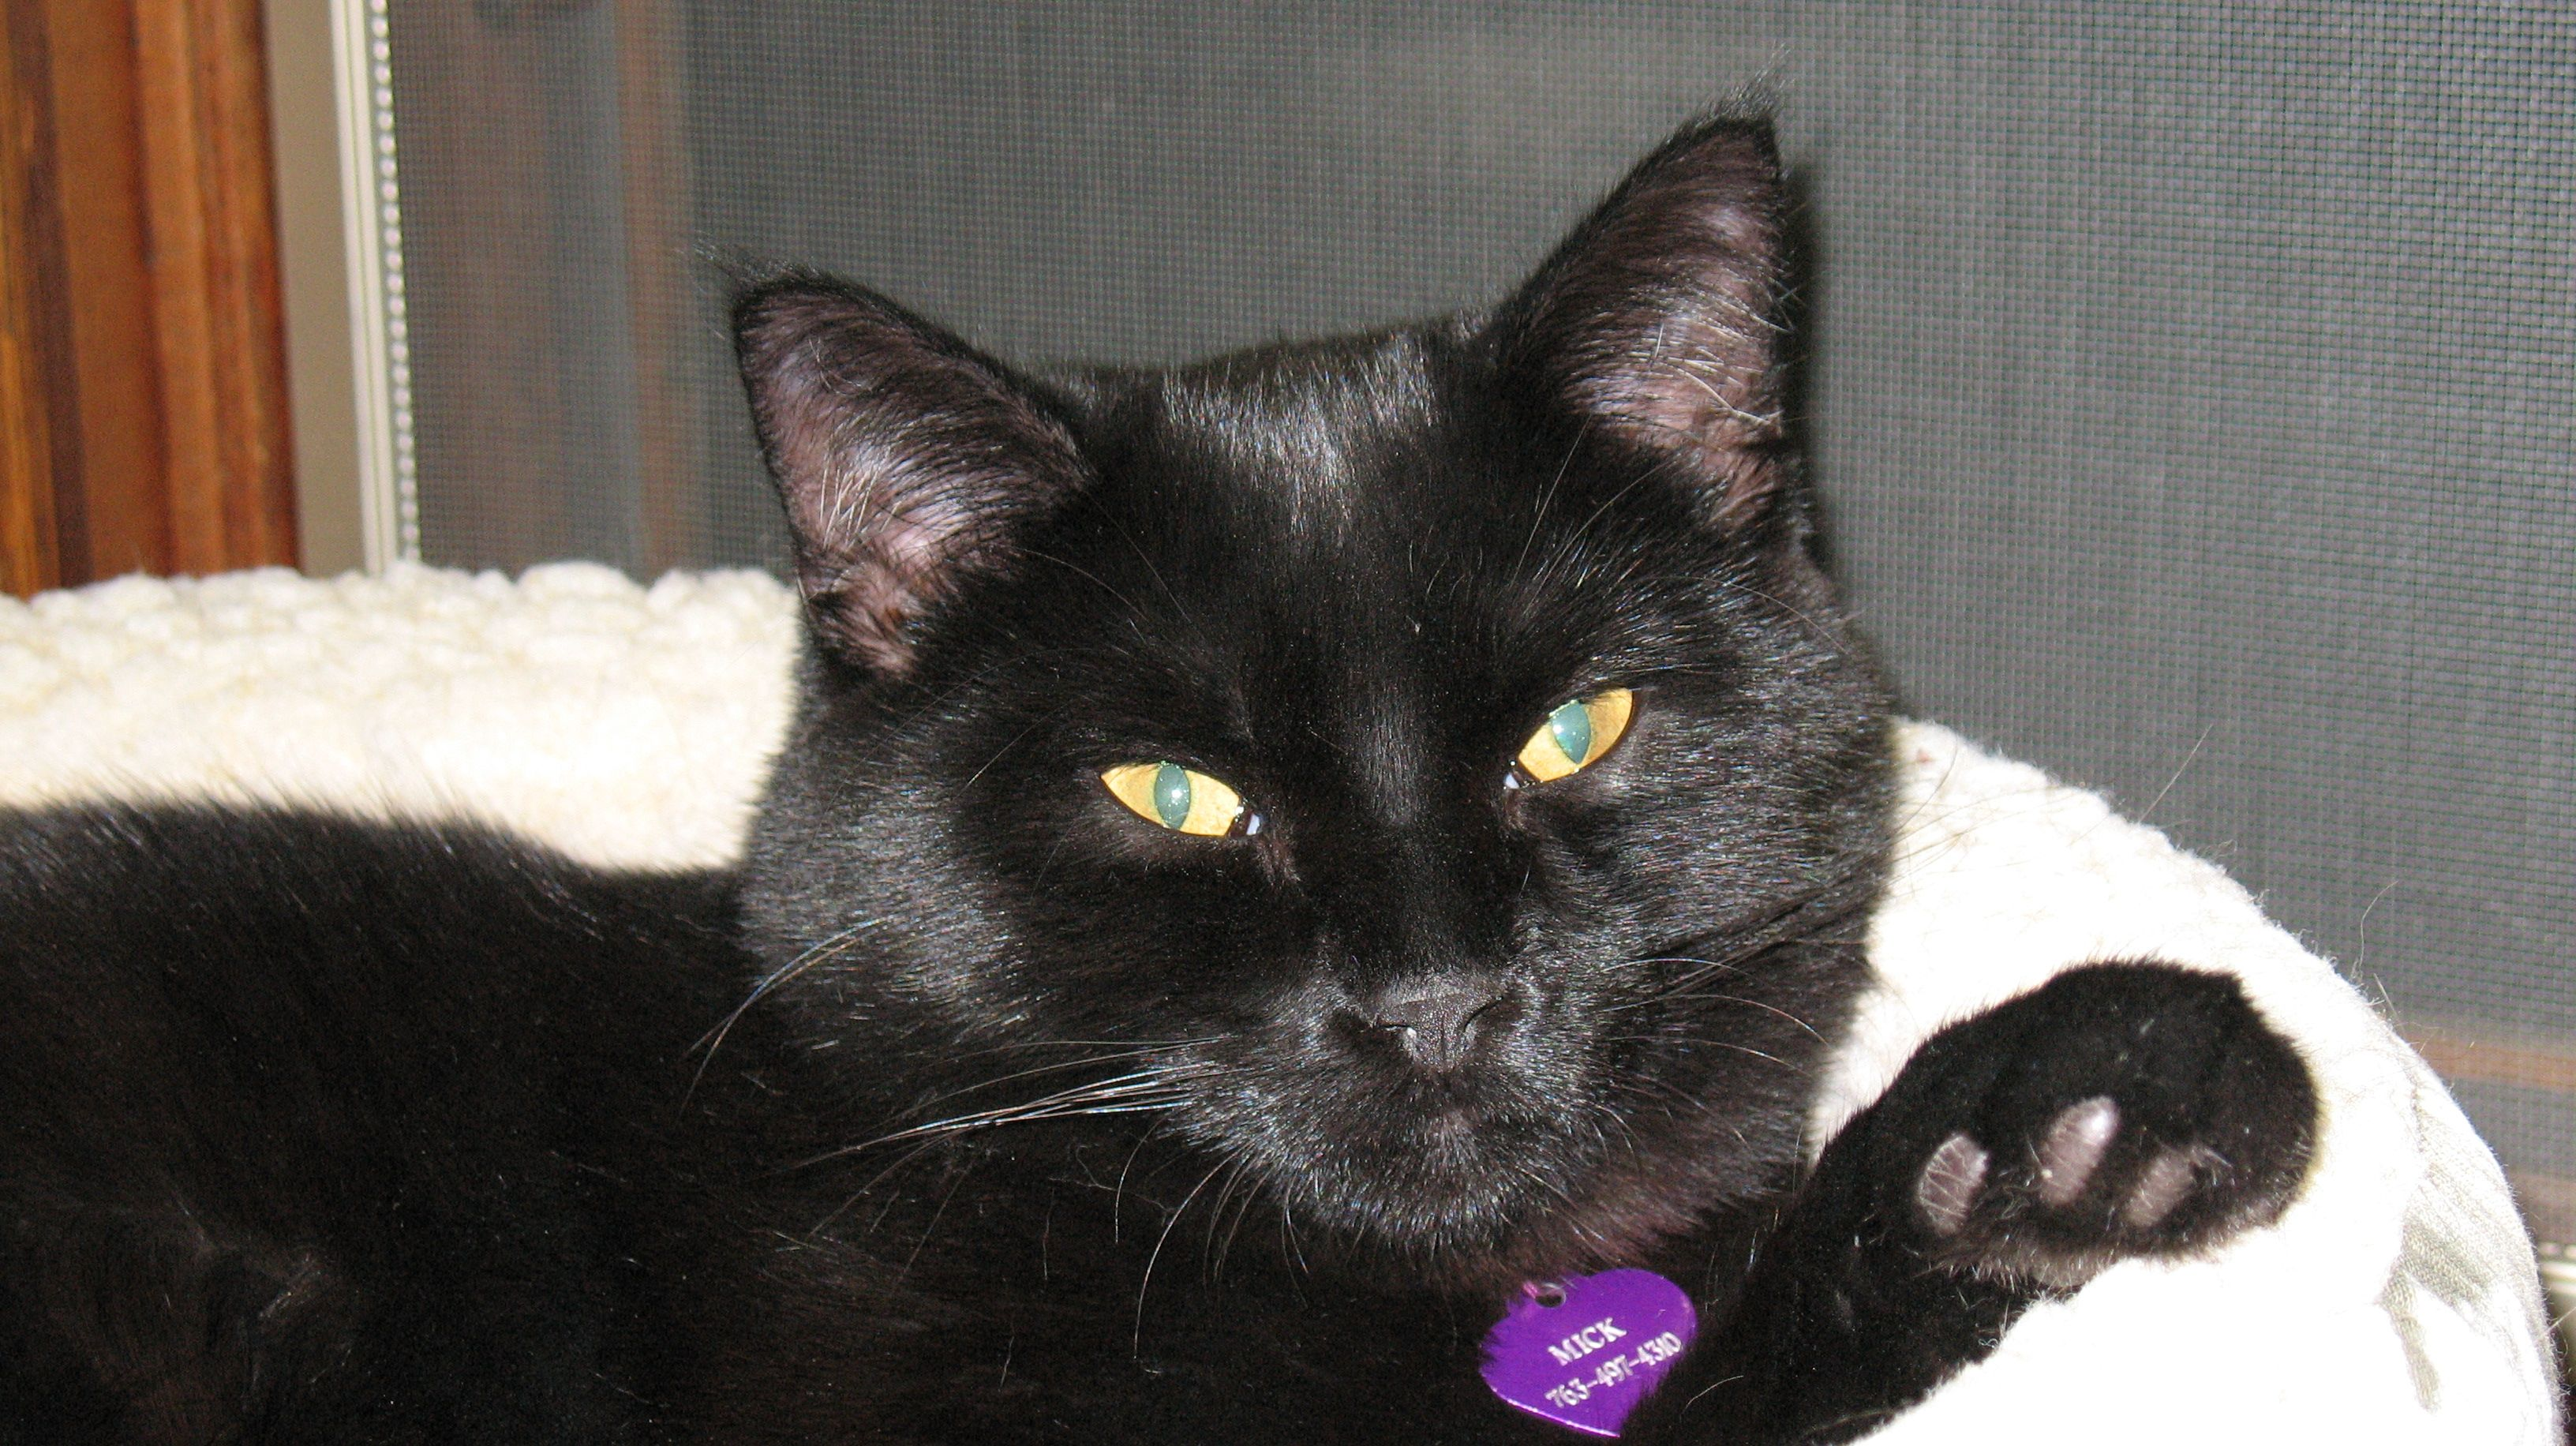 Mick Lost Missing From The Rec Center Area In St Michael Mn Since April 16 2011 Solid Black Gold Eyes 13 Not Dec Losing A Pet Pets St Michael